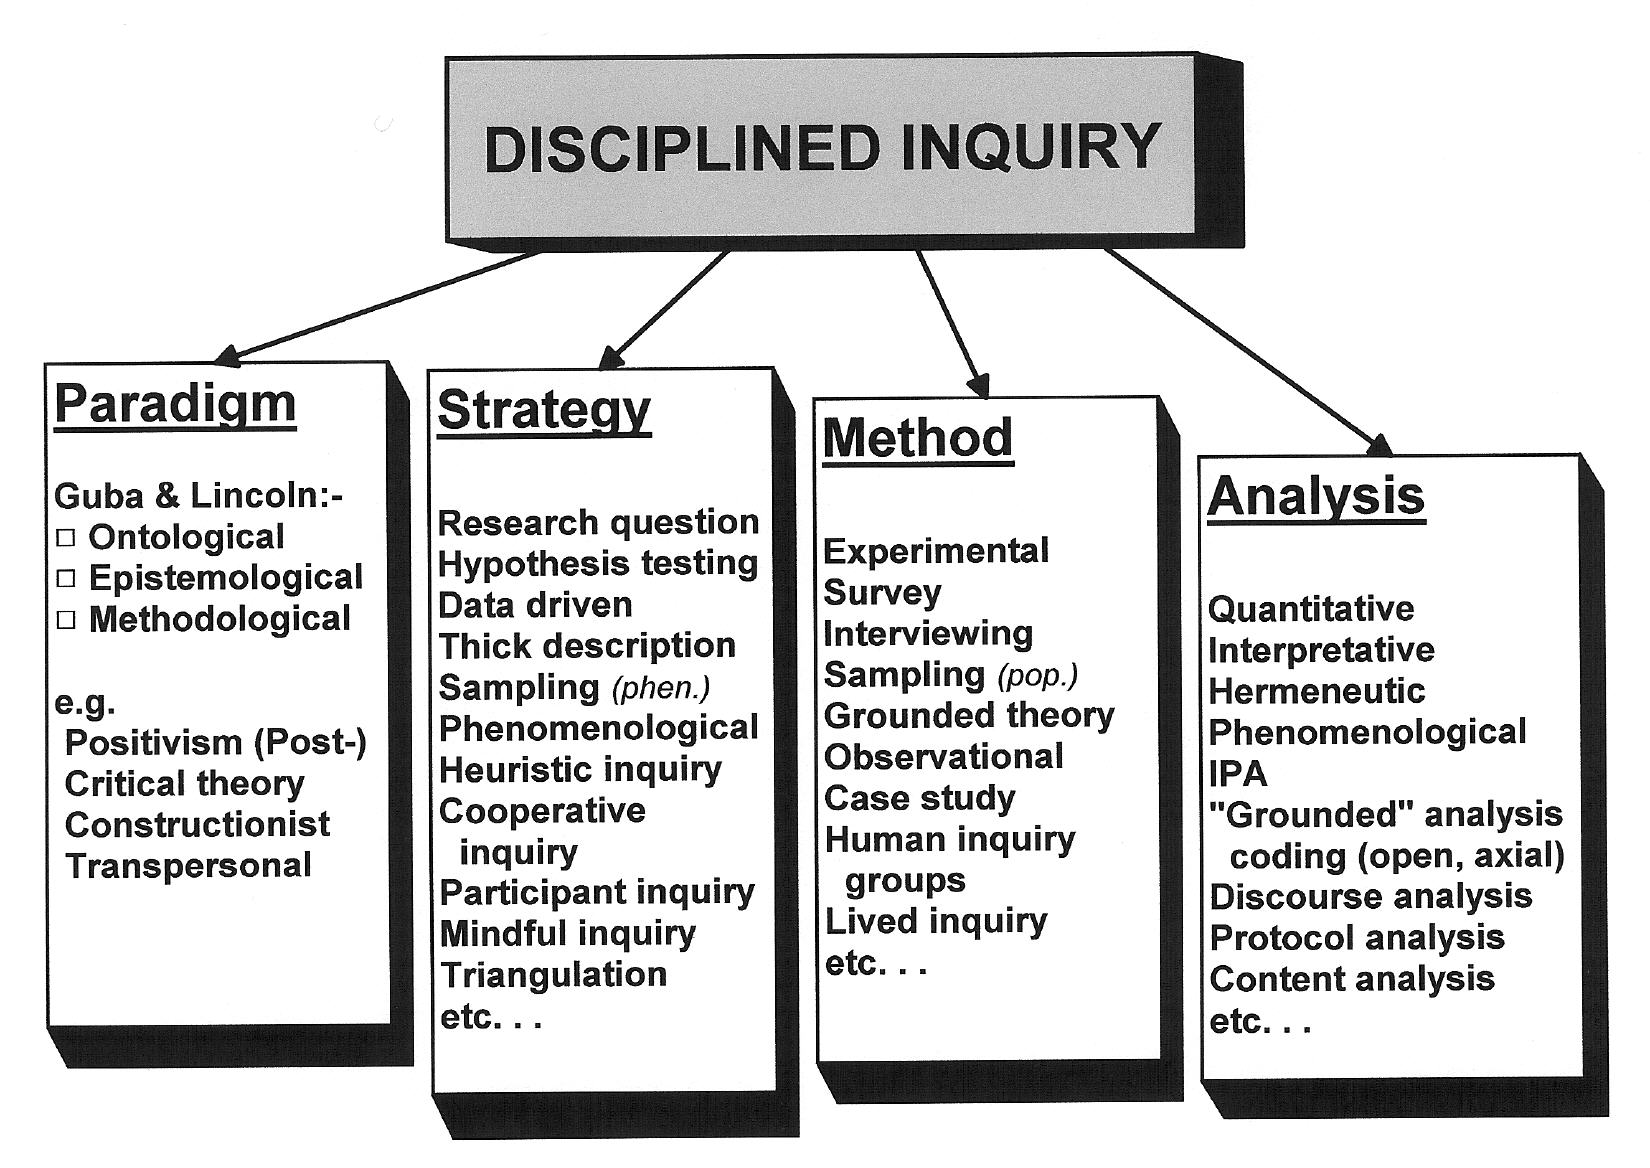 Qualitative Inquiry: A Model of Disciplined Inquiry